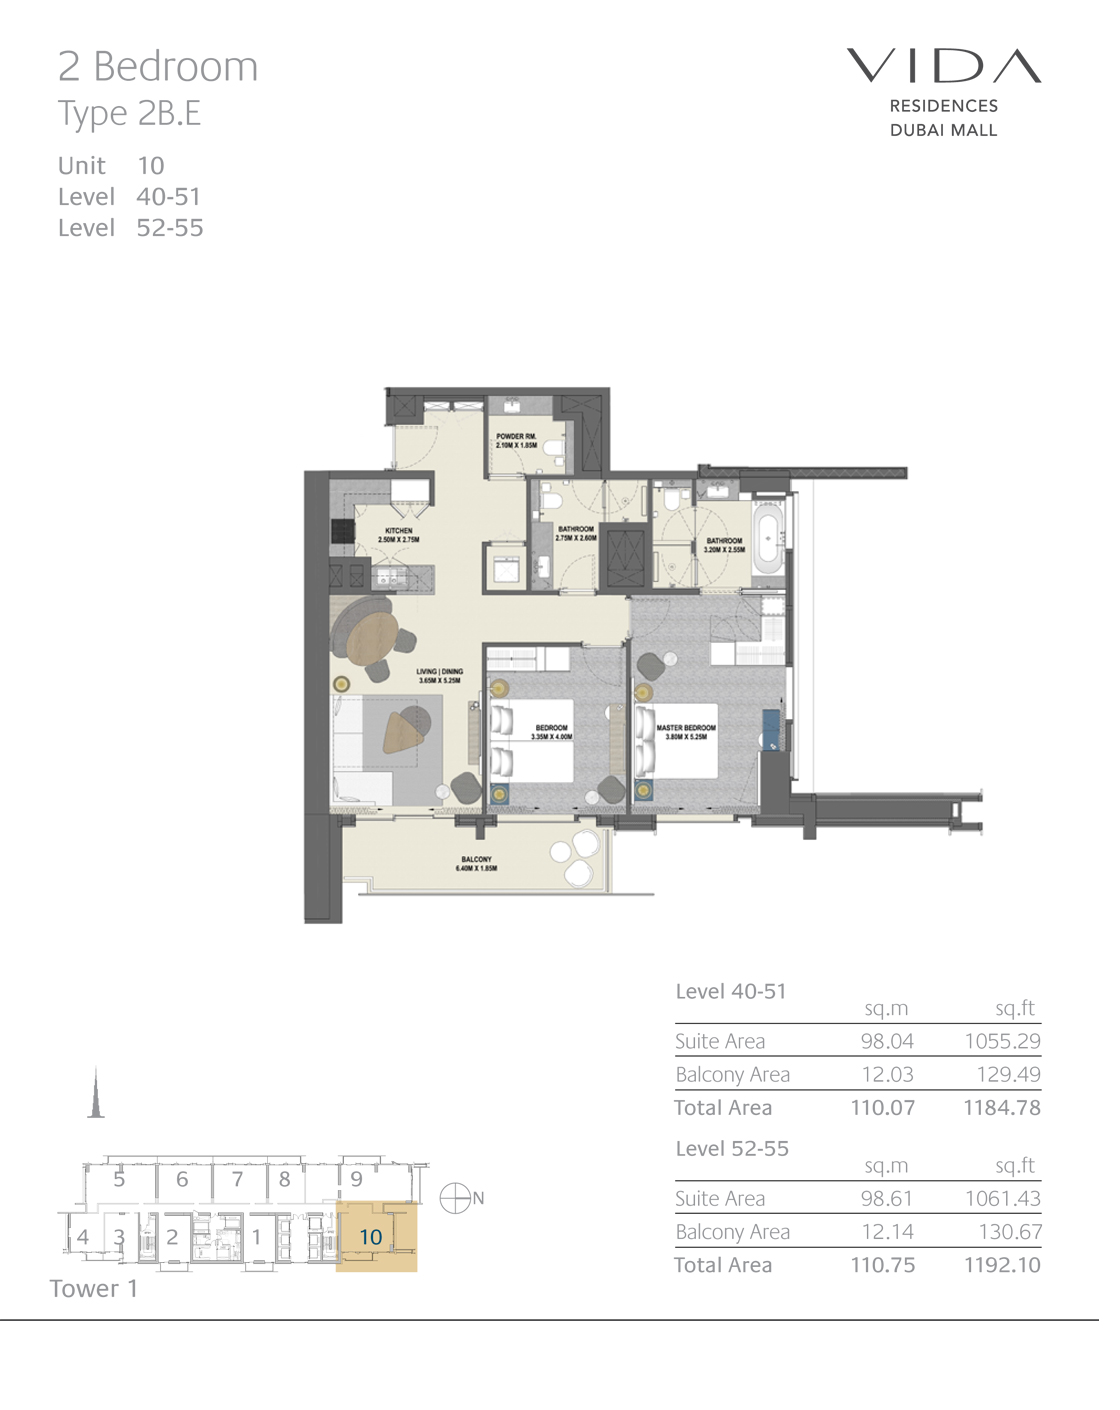 2 Bedroom Type 2B.E Unit 10 Level 40-51 Level 52-55